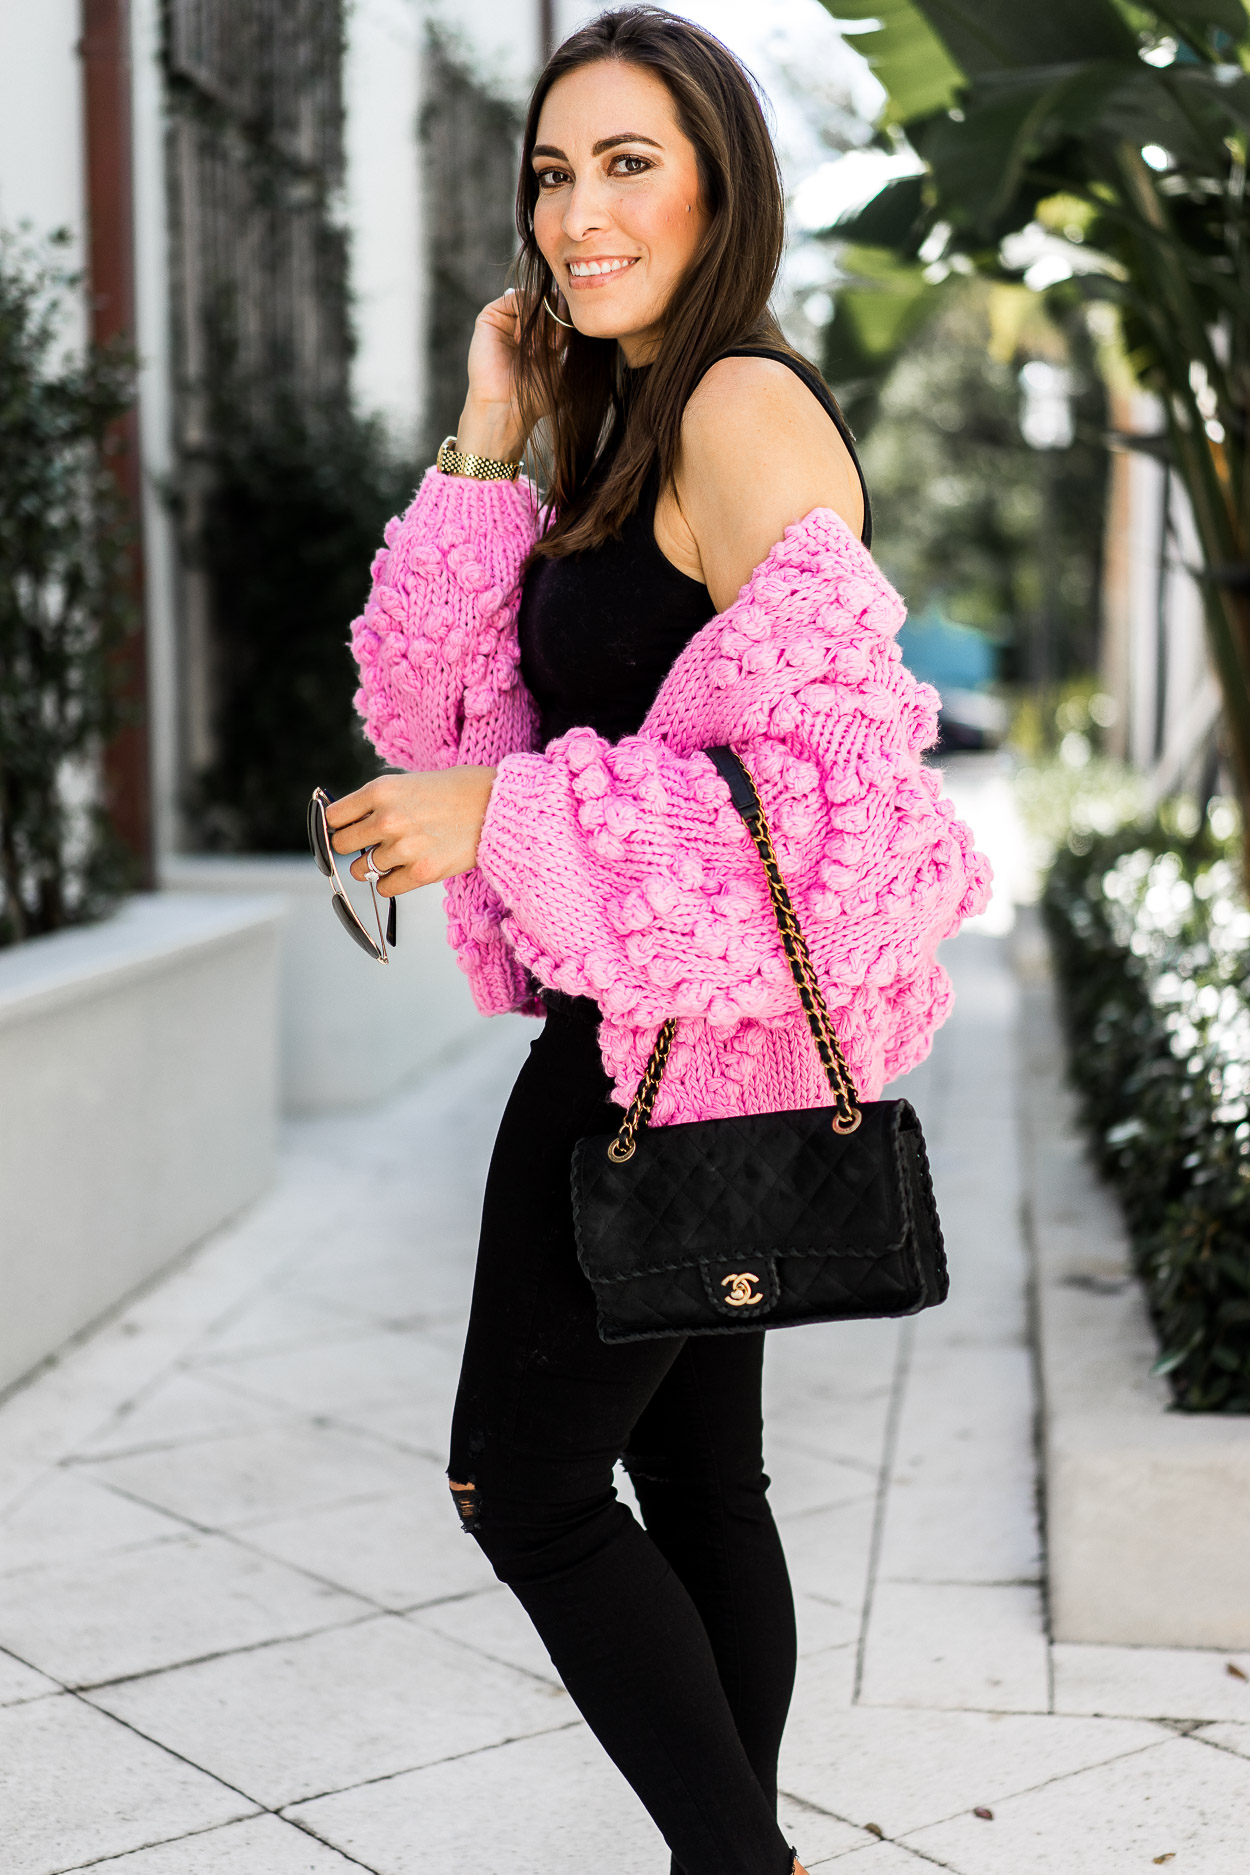 Stand out in this pink pom pom sweater like fashion blogger Amanda for your easy Valentine's day look